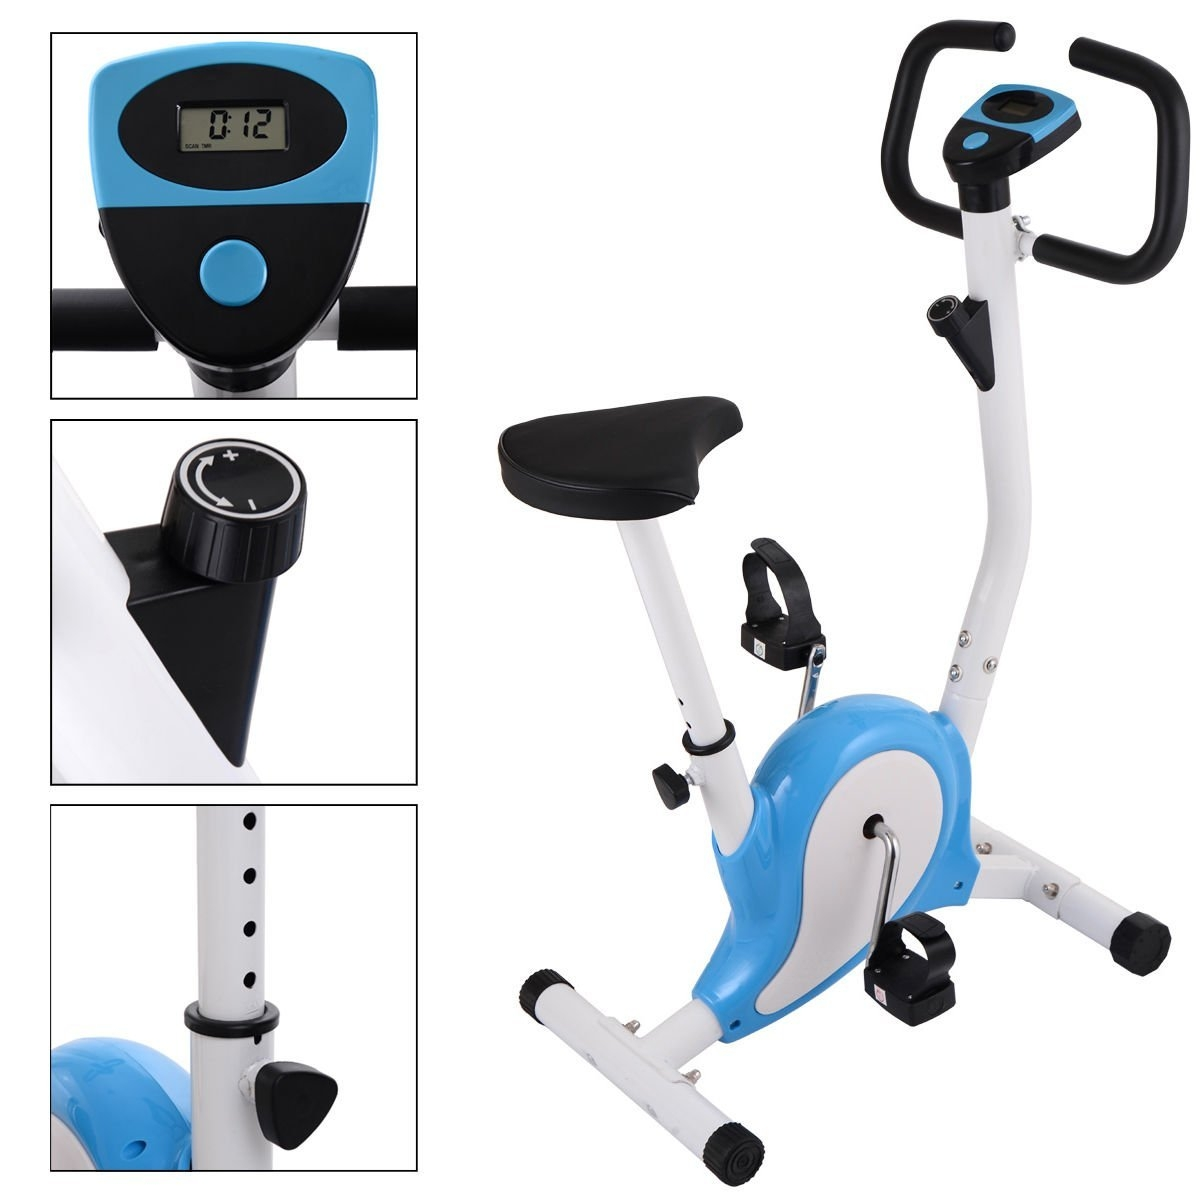 New MTN-G Upright Exercise Bike Magnetic Resistance Cardi...